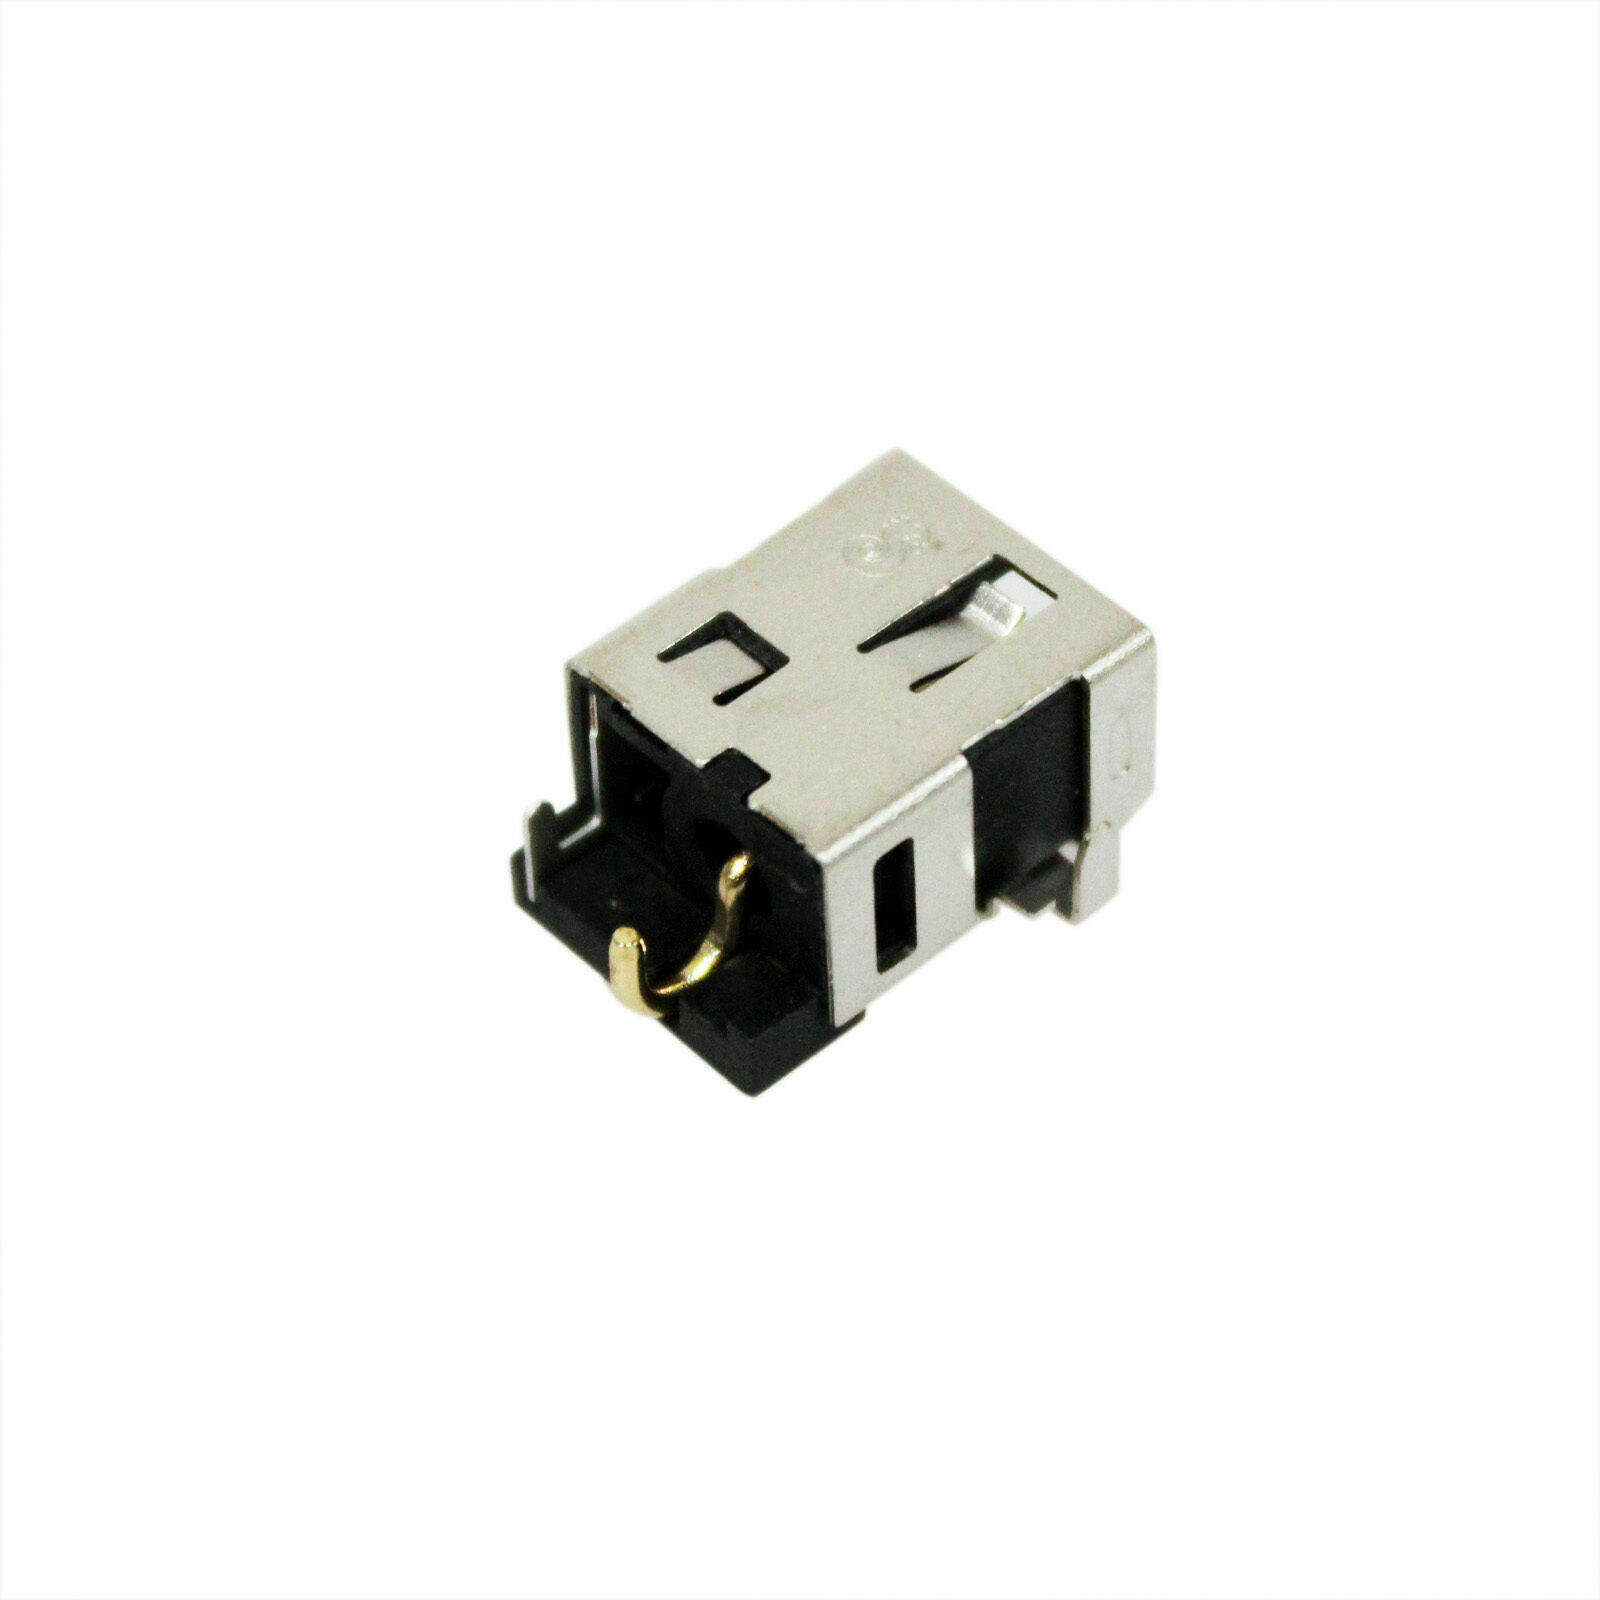 DC Input Socket Power Jack Port Connector for Asus W509 Series Parts Replace jp